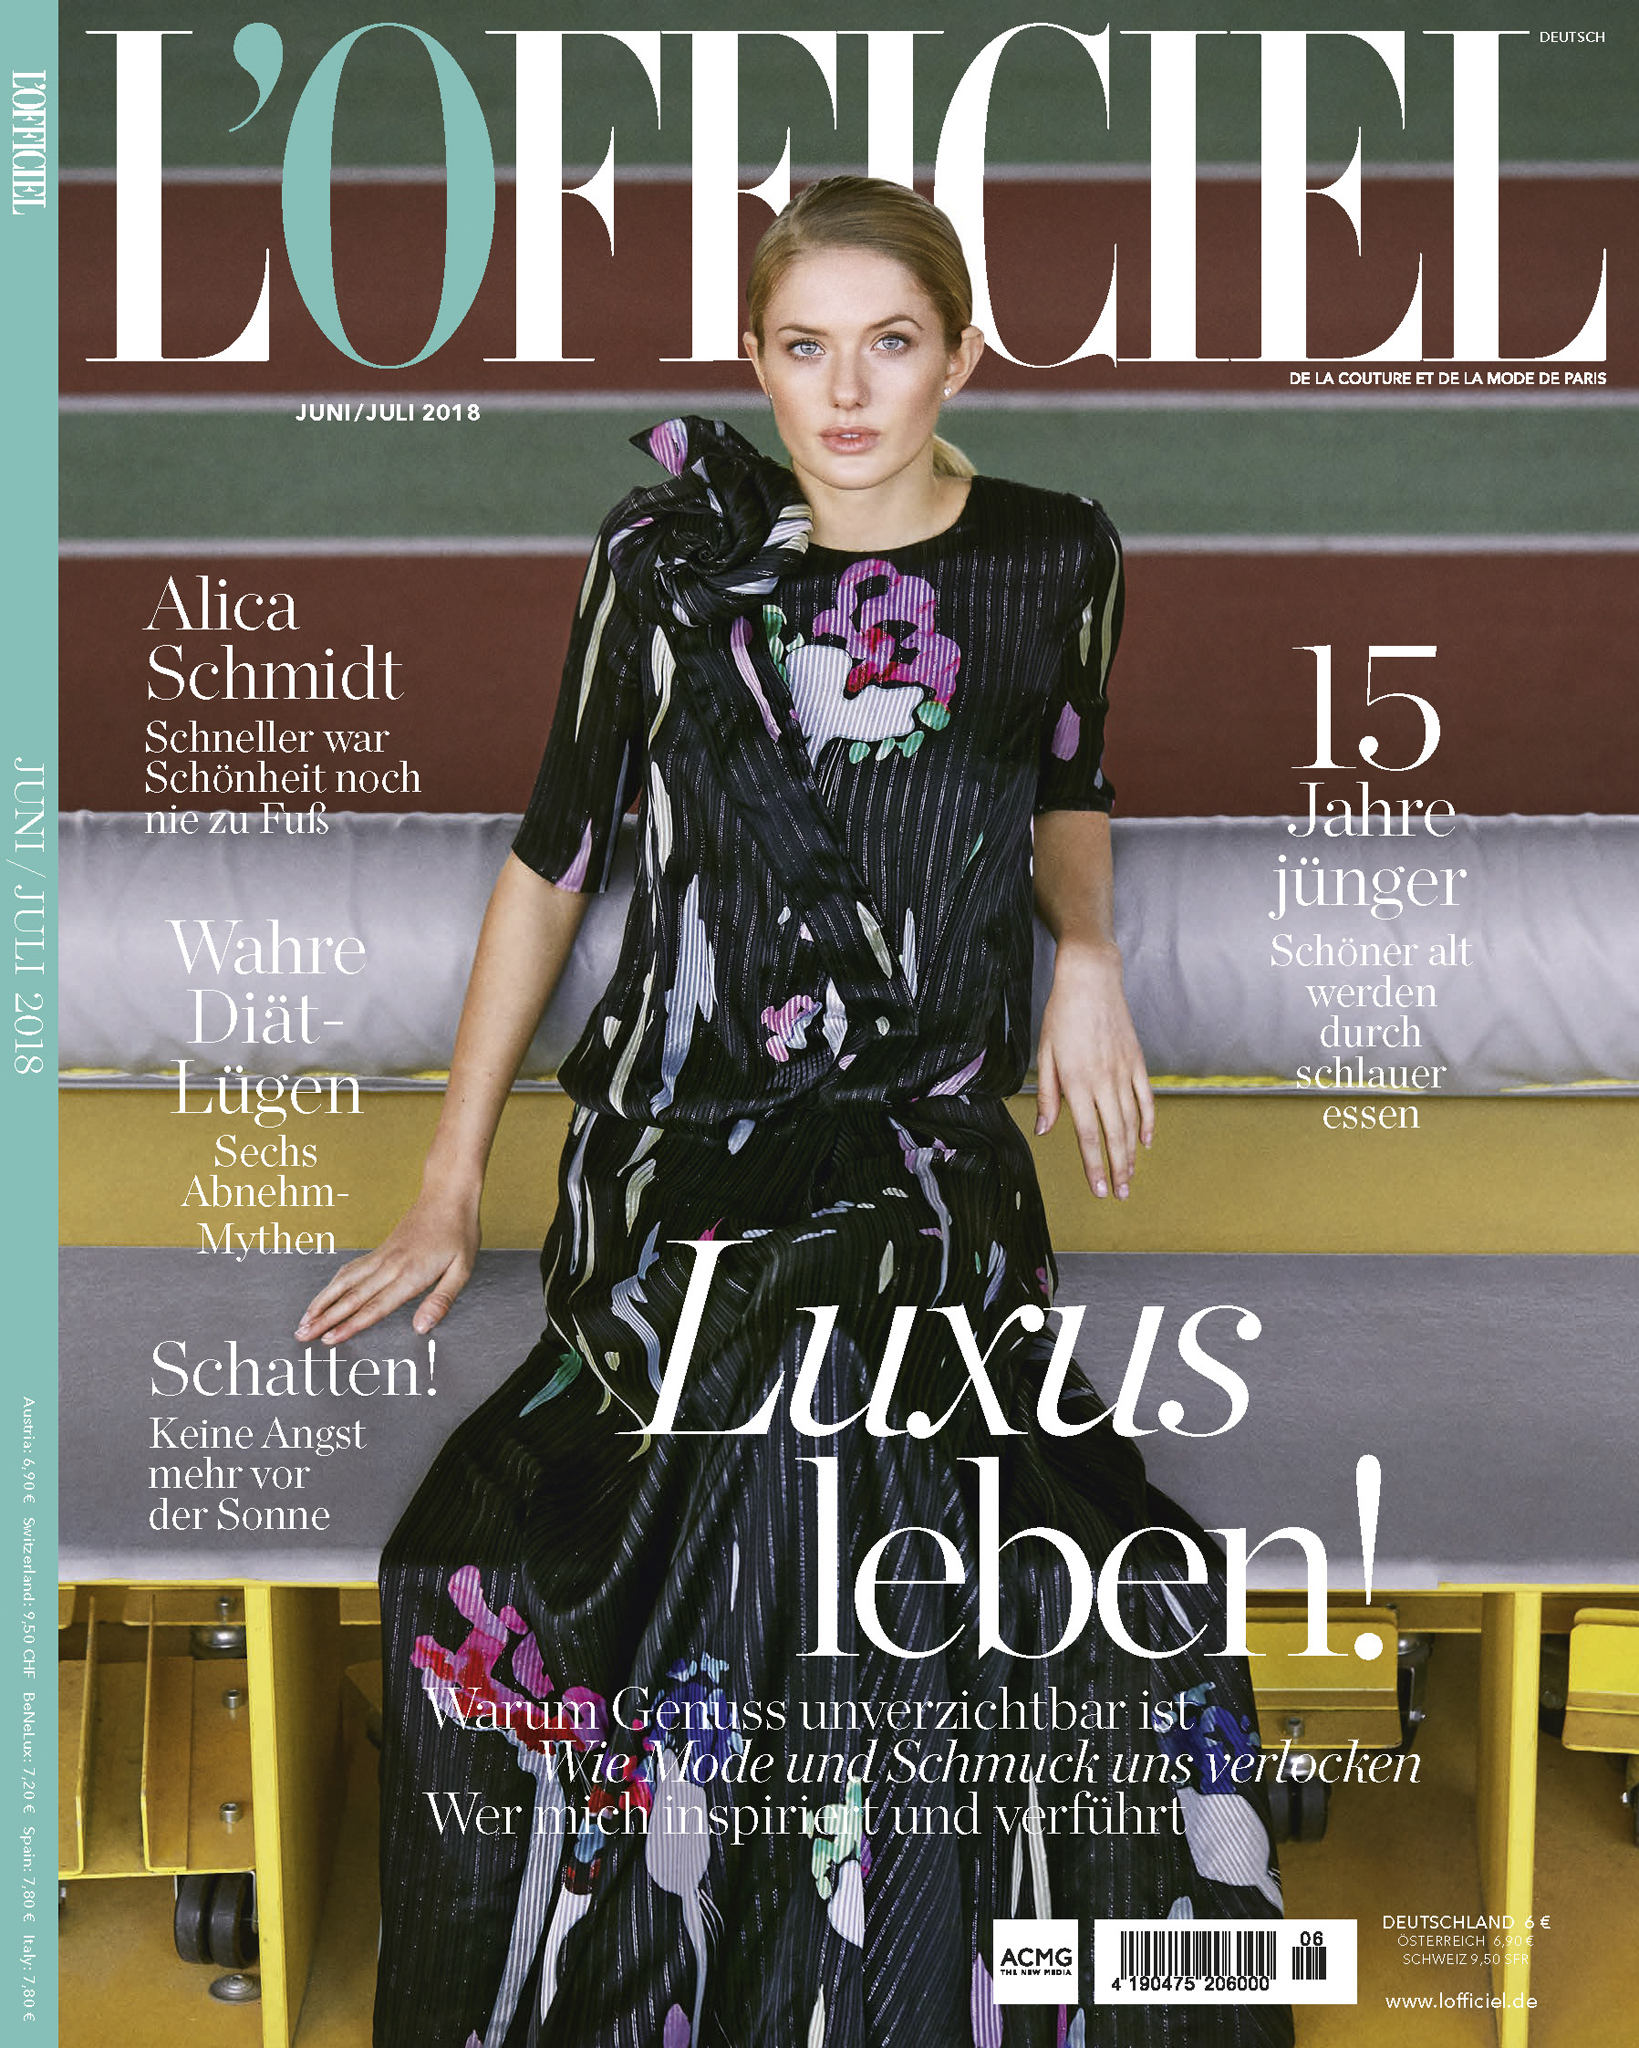 Robin Kater - Photographer l'officiel germany